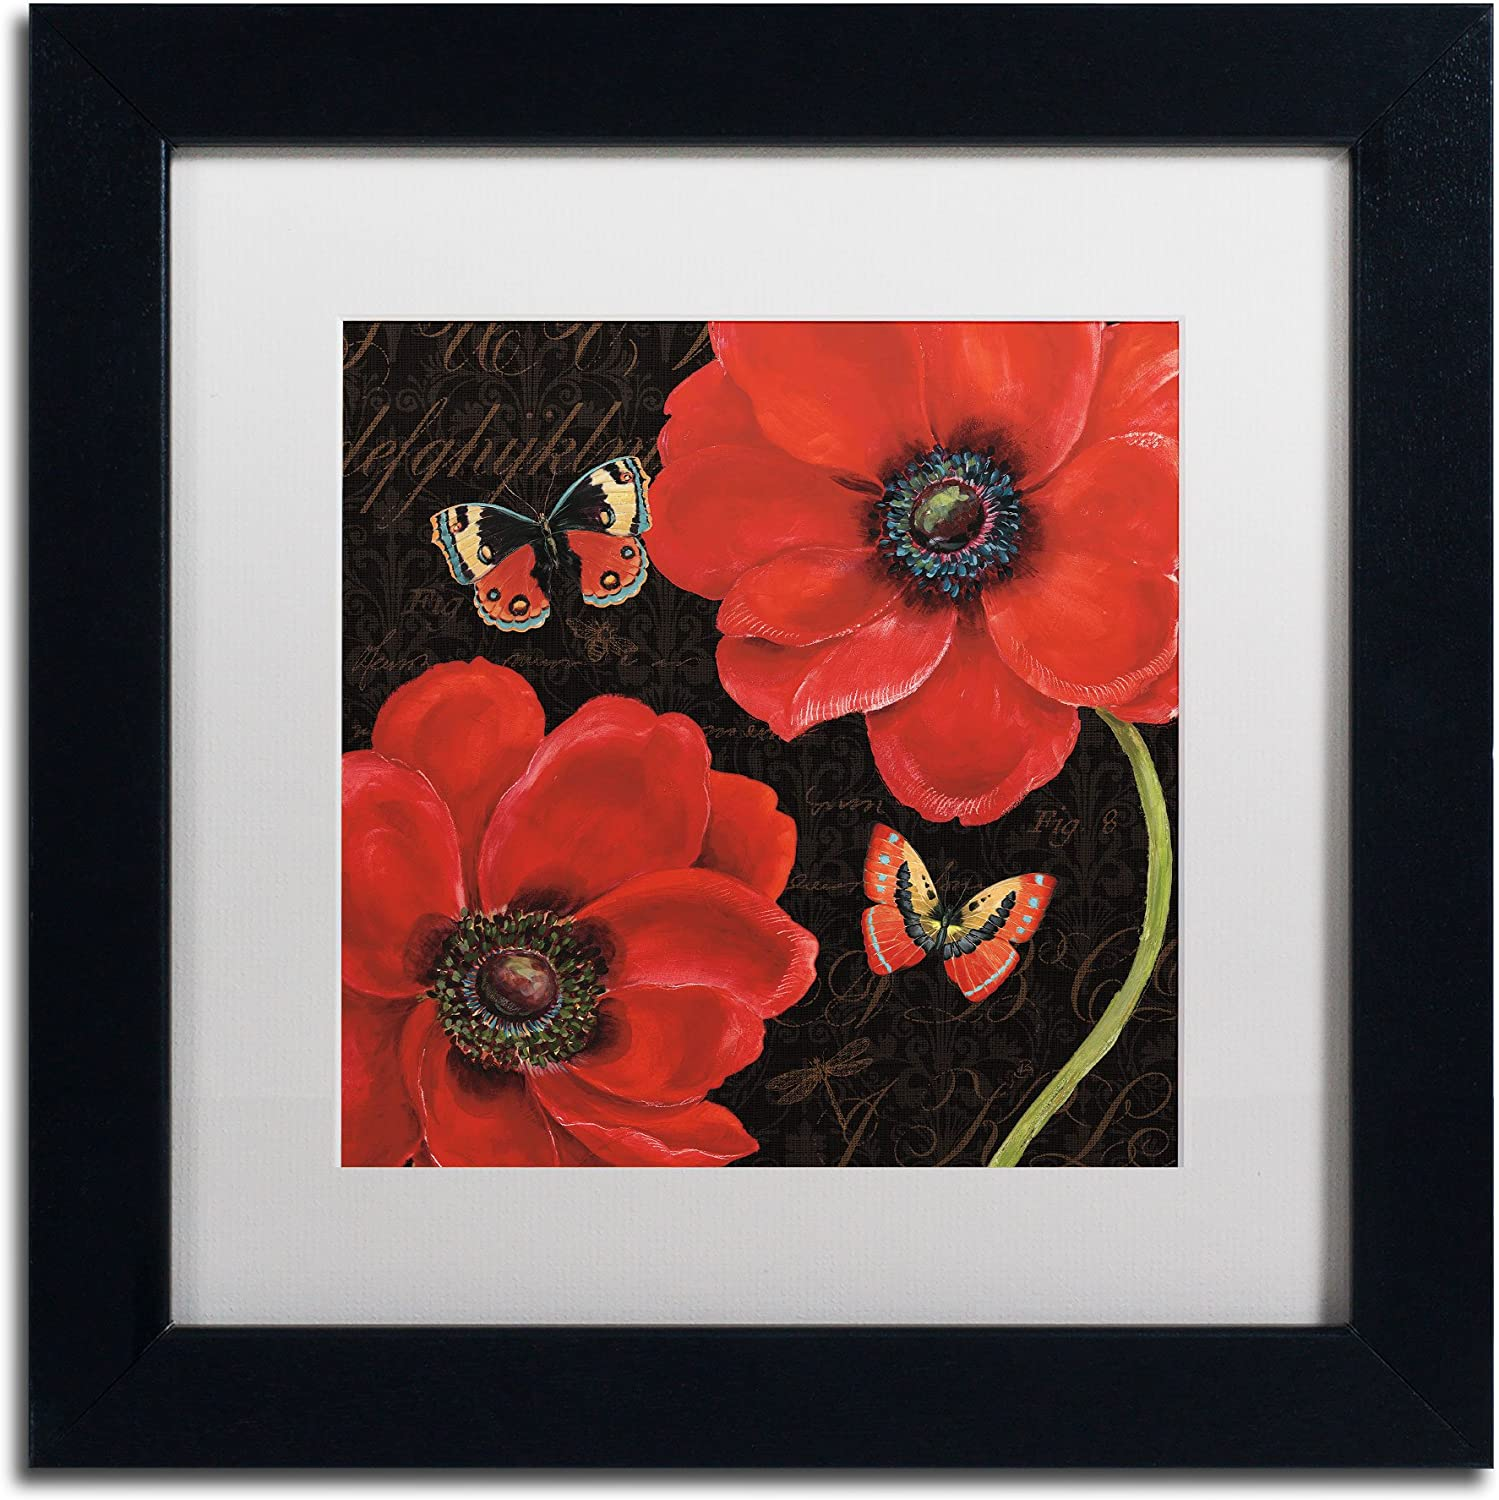 Trademark Fine Art Petals and Wings III Framed Art by Daphne Brissonnet, 11 by 11Inch, White Matte with Black Frame